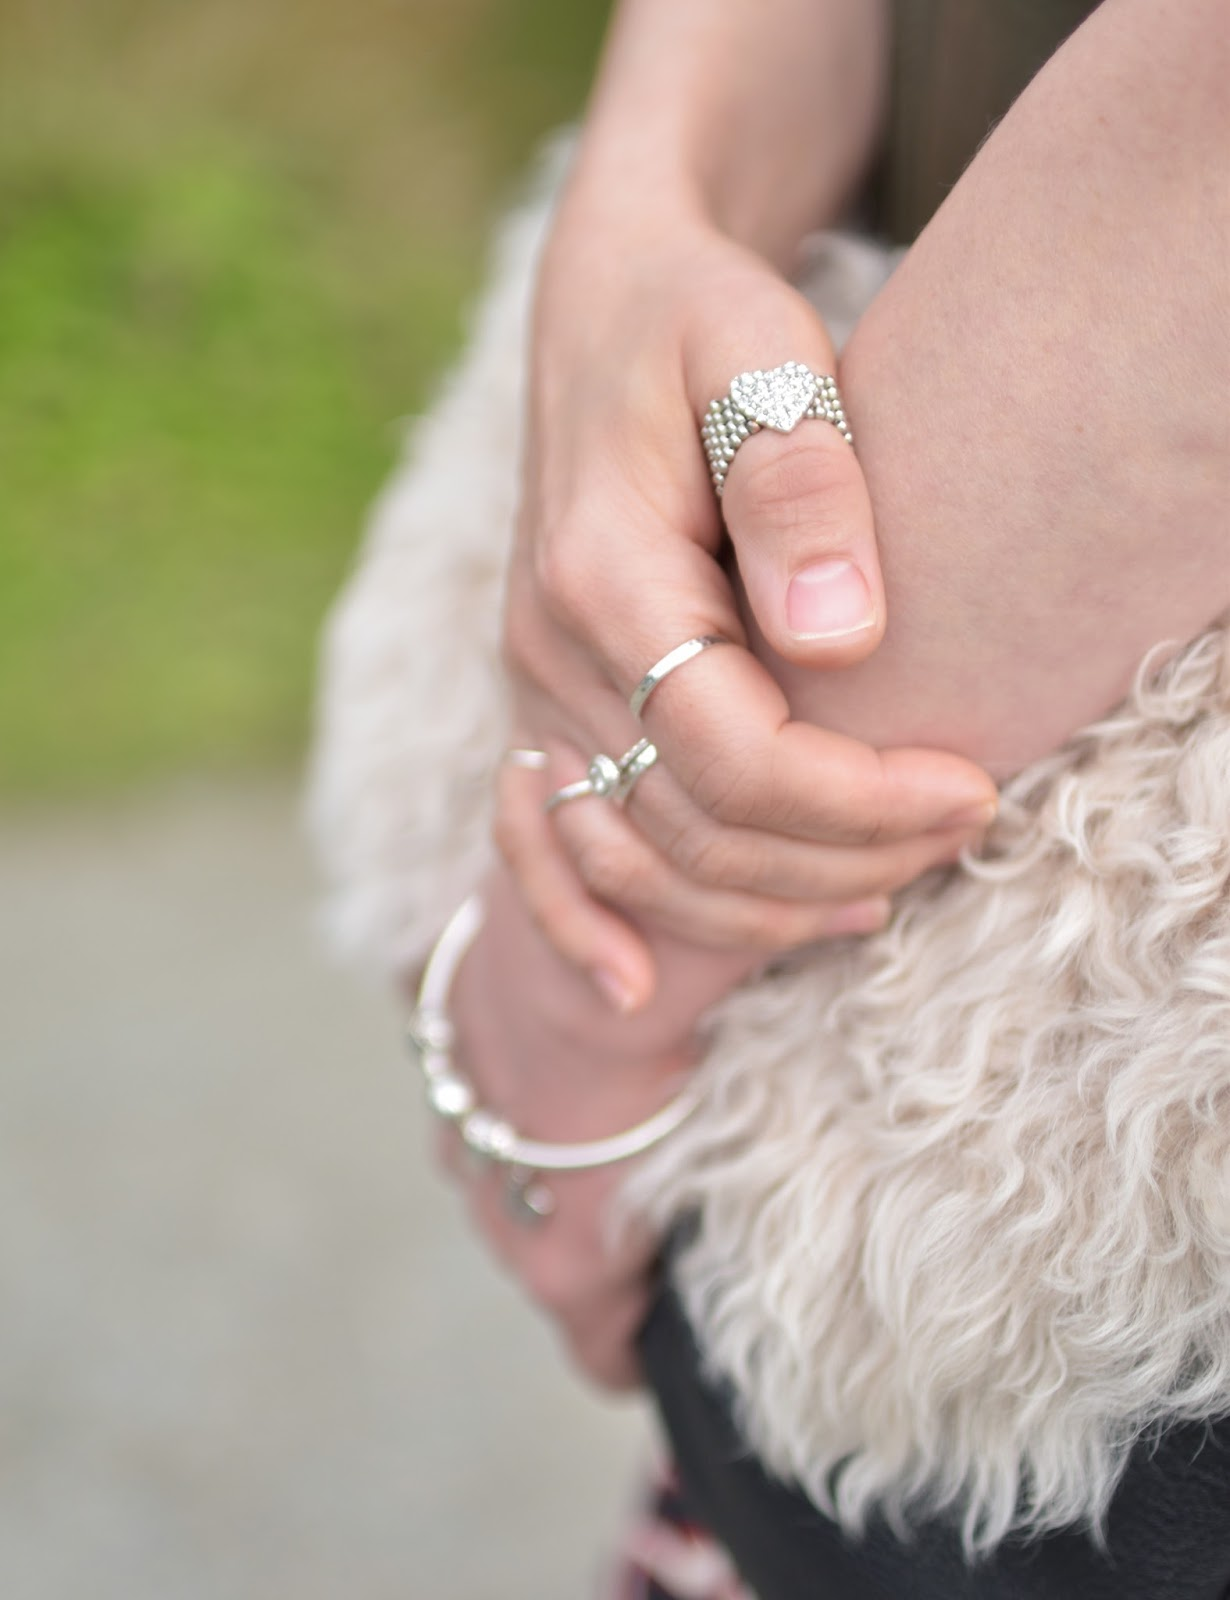 sheepskin clutch, rhinestone heart ring